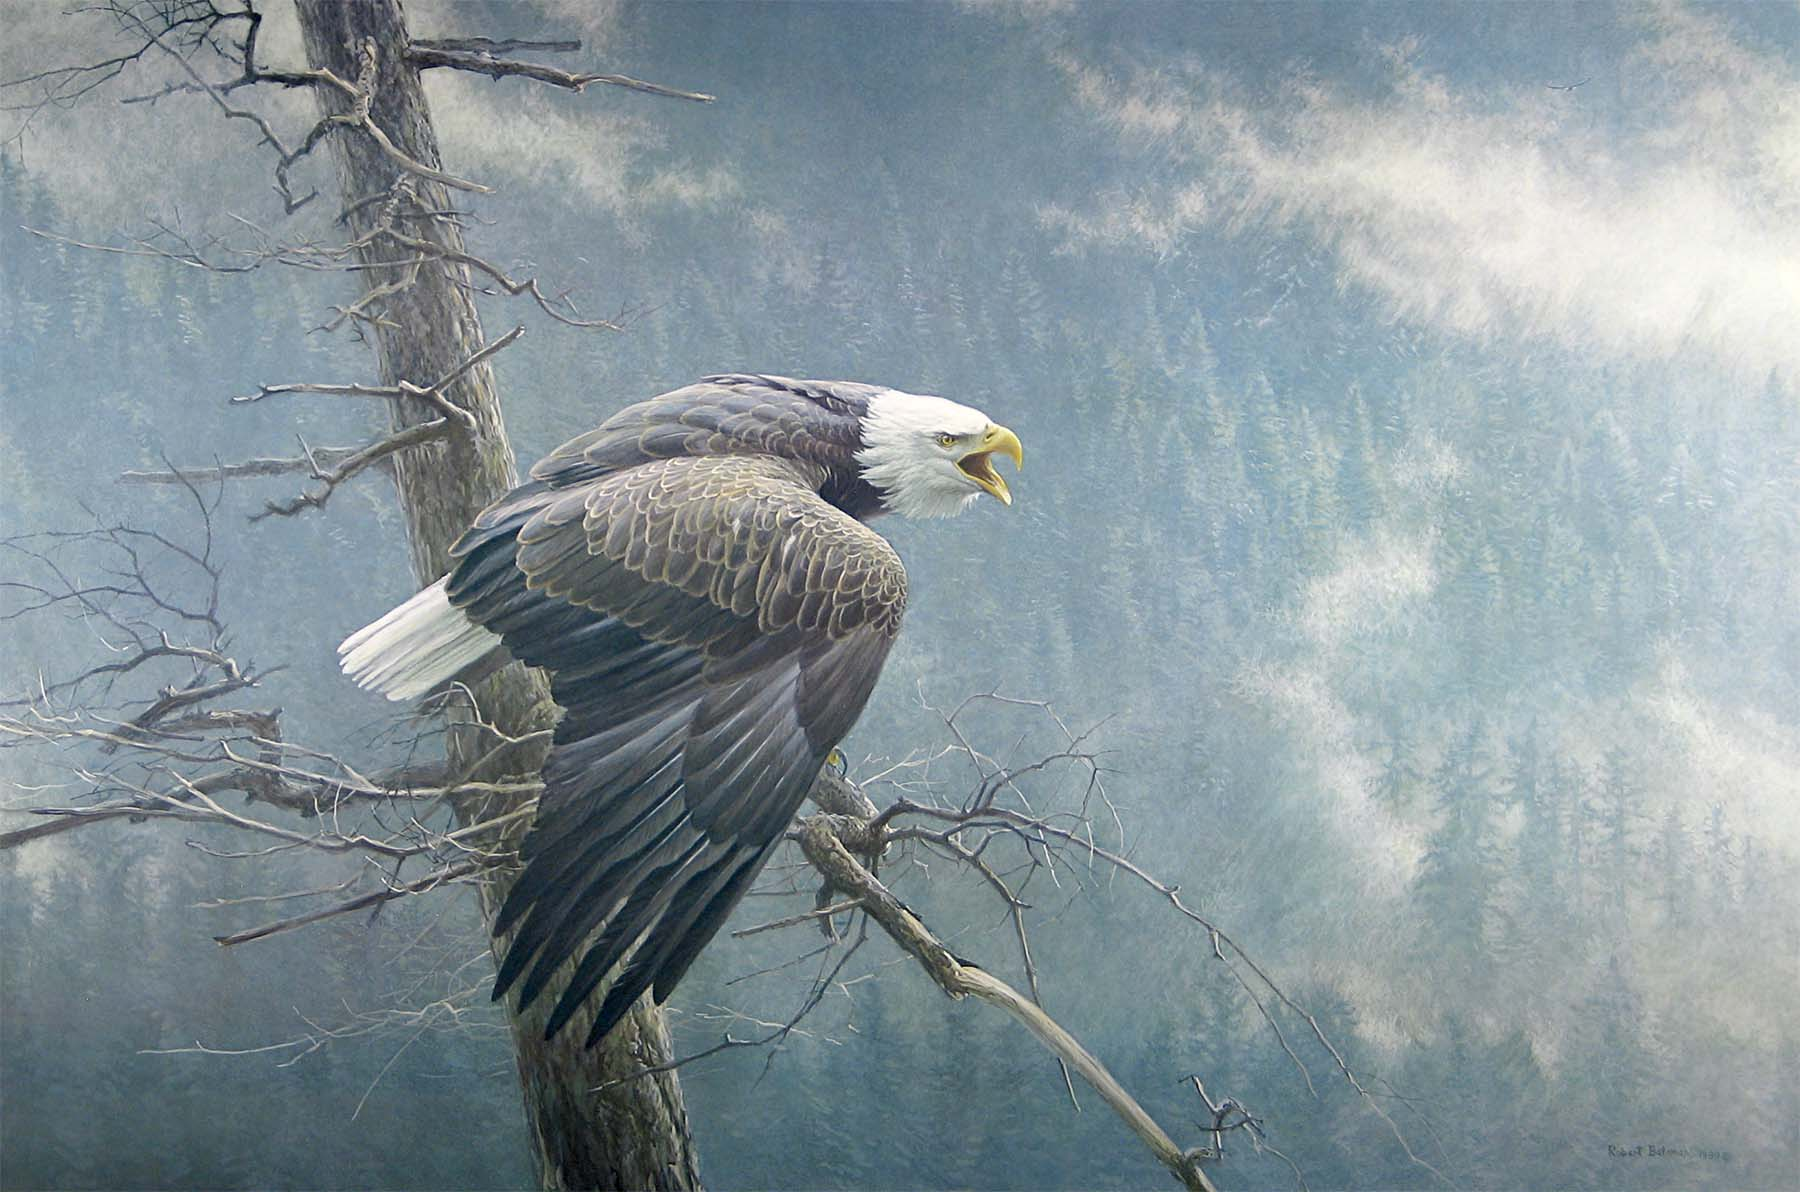 The Air, the Forest, and the Watch - Robert Bateman